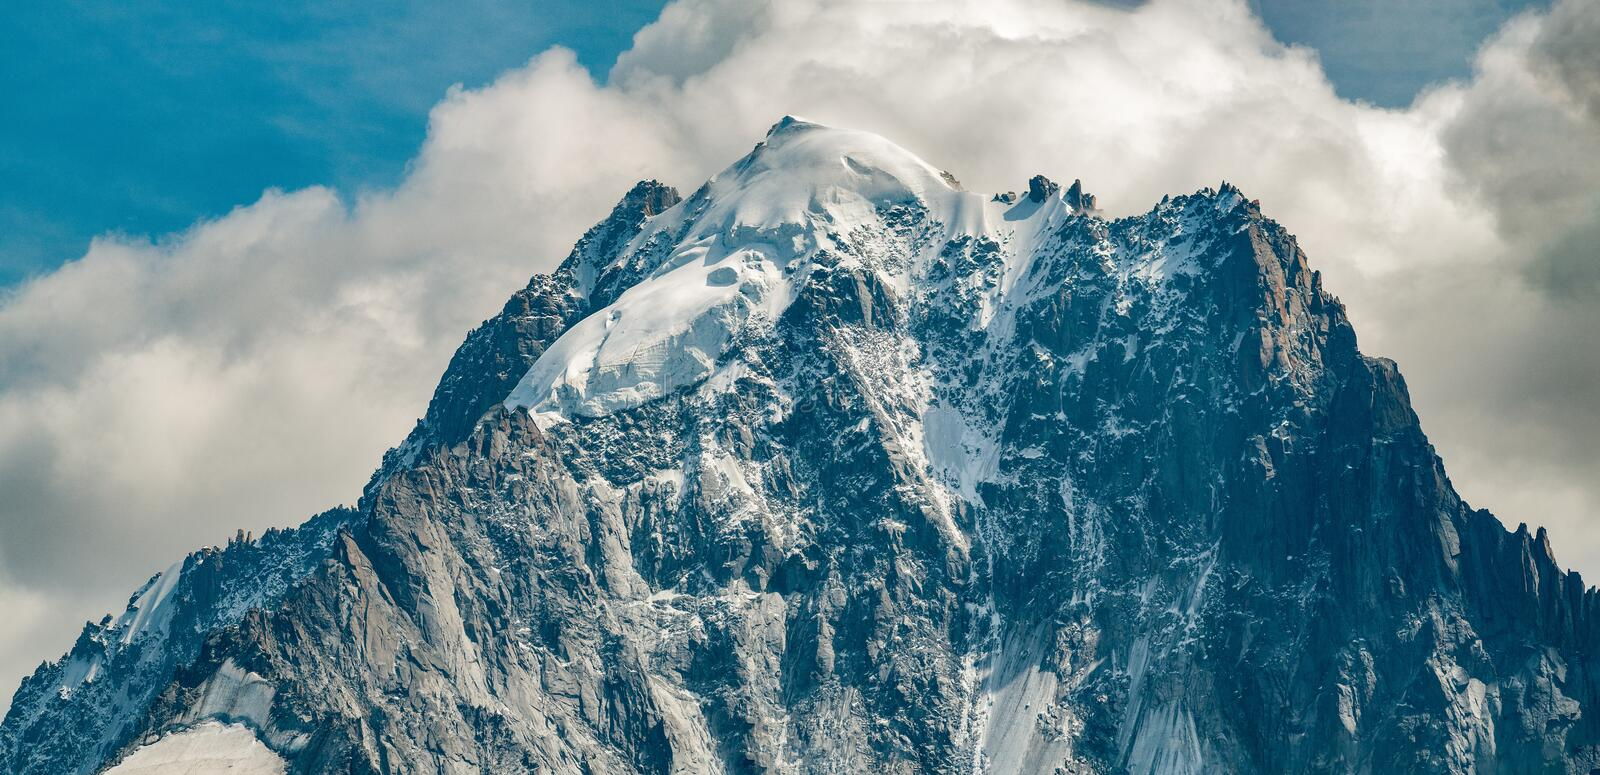 Aiguille Verte in close-up with snow topped mountain and clouds in the background stock photography